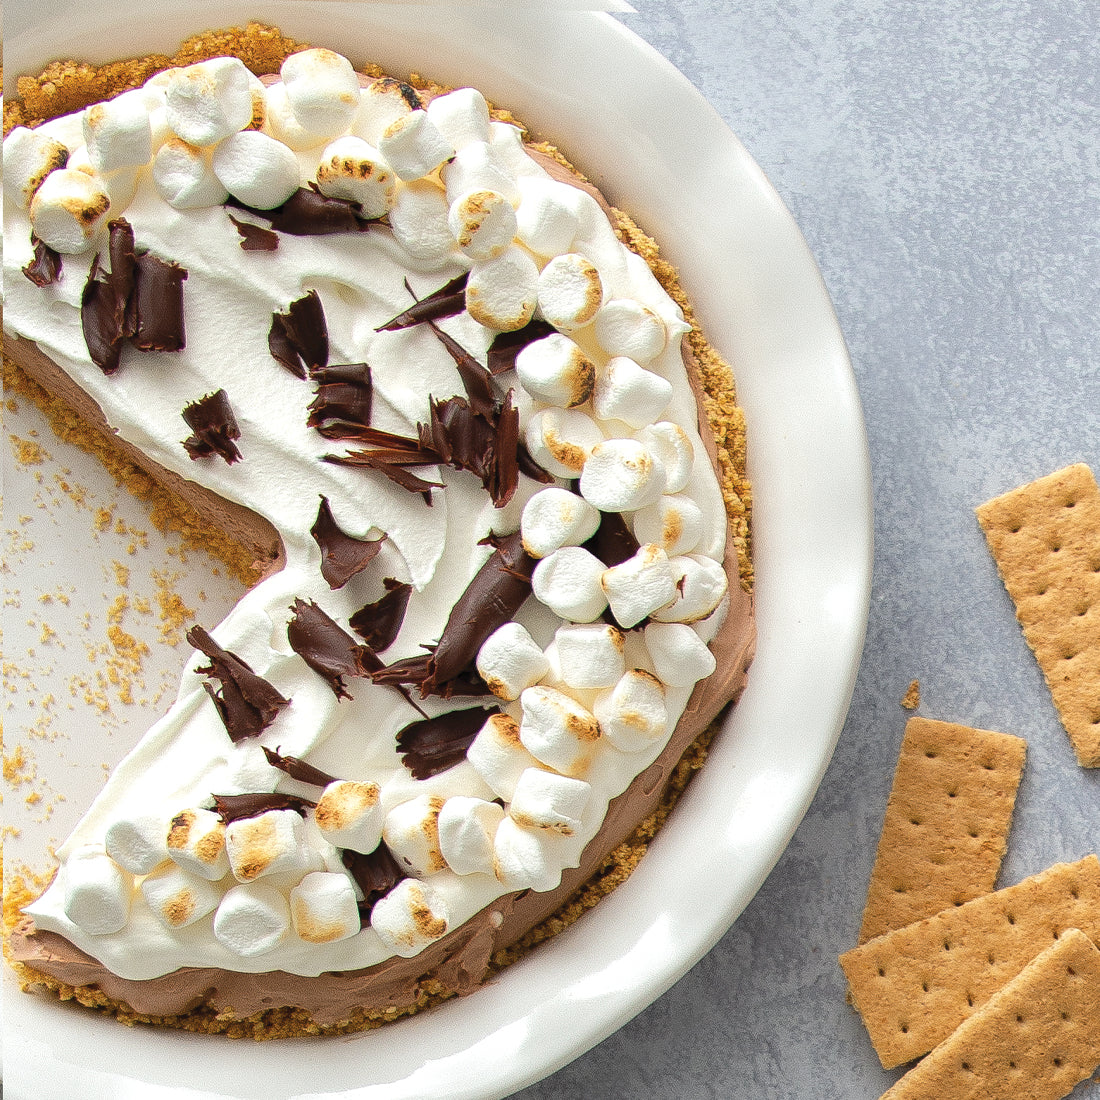 S'mores No-Bake Cheesecake in pie dish garnished with chocolate shavings.